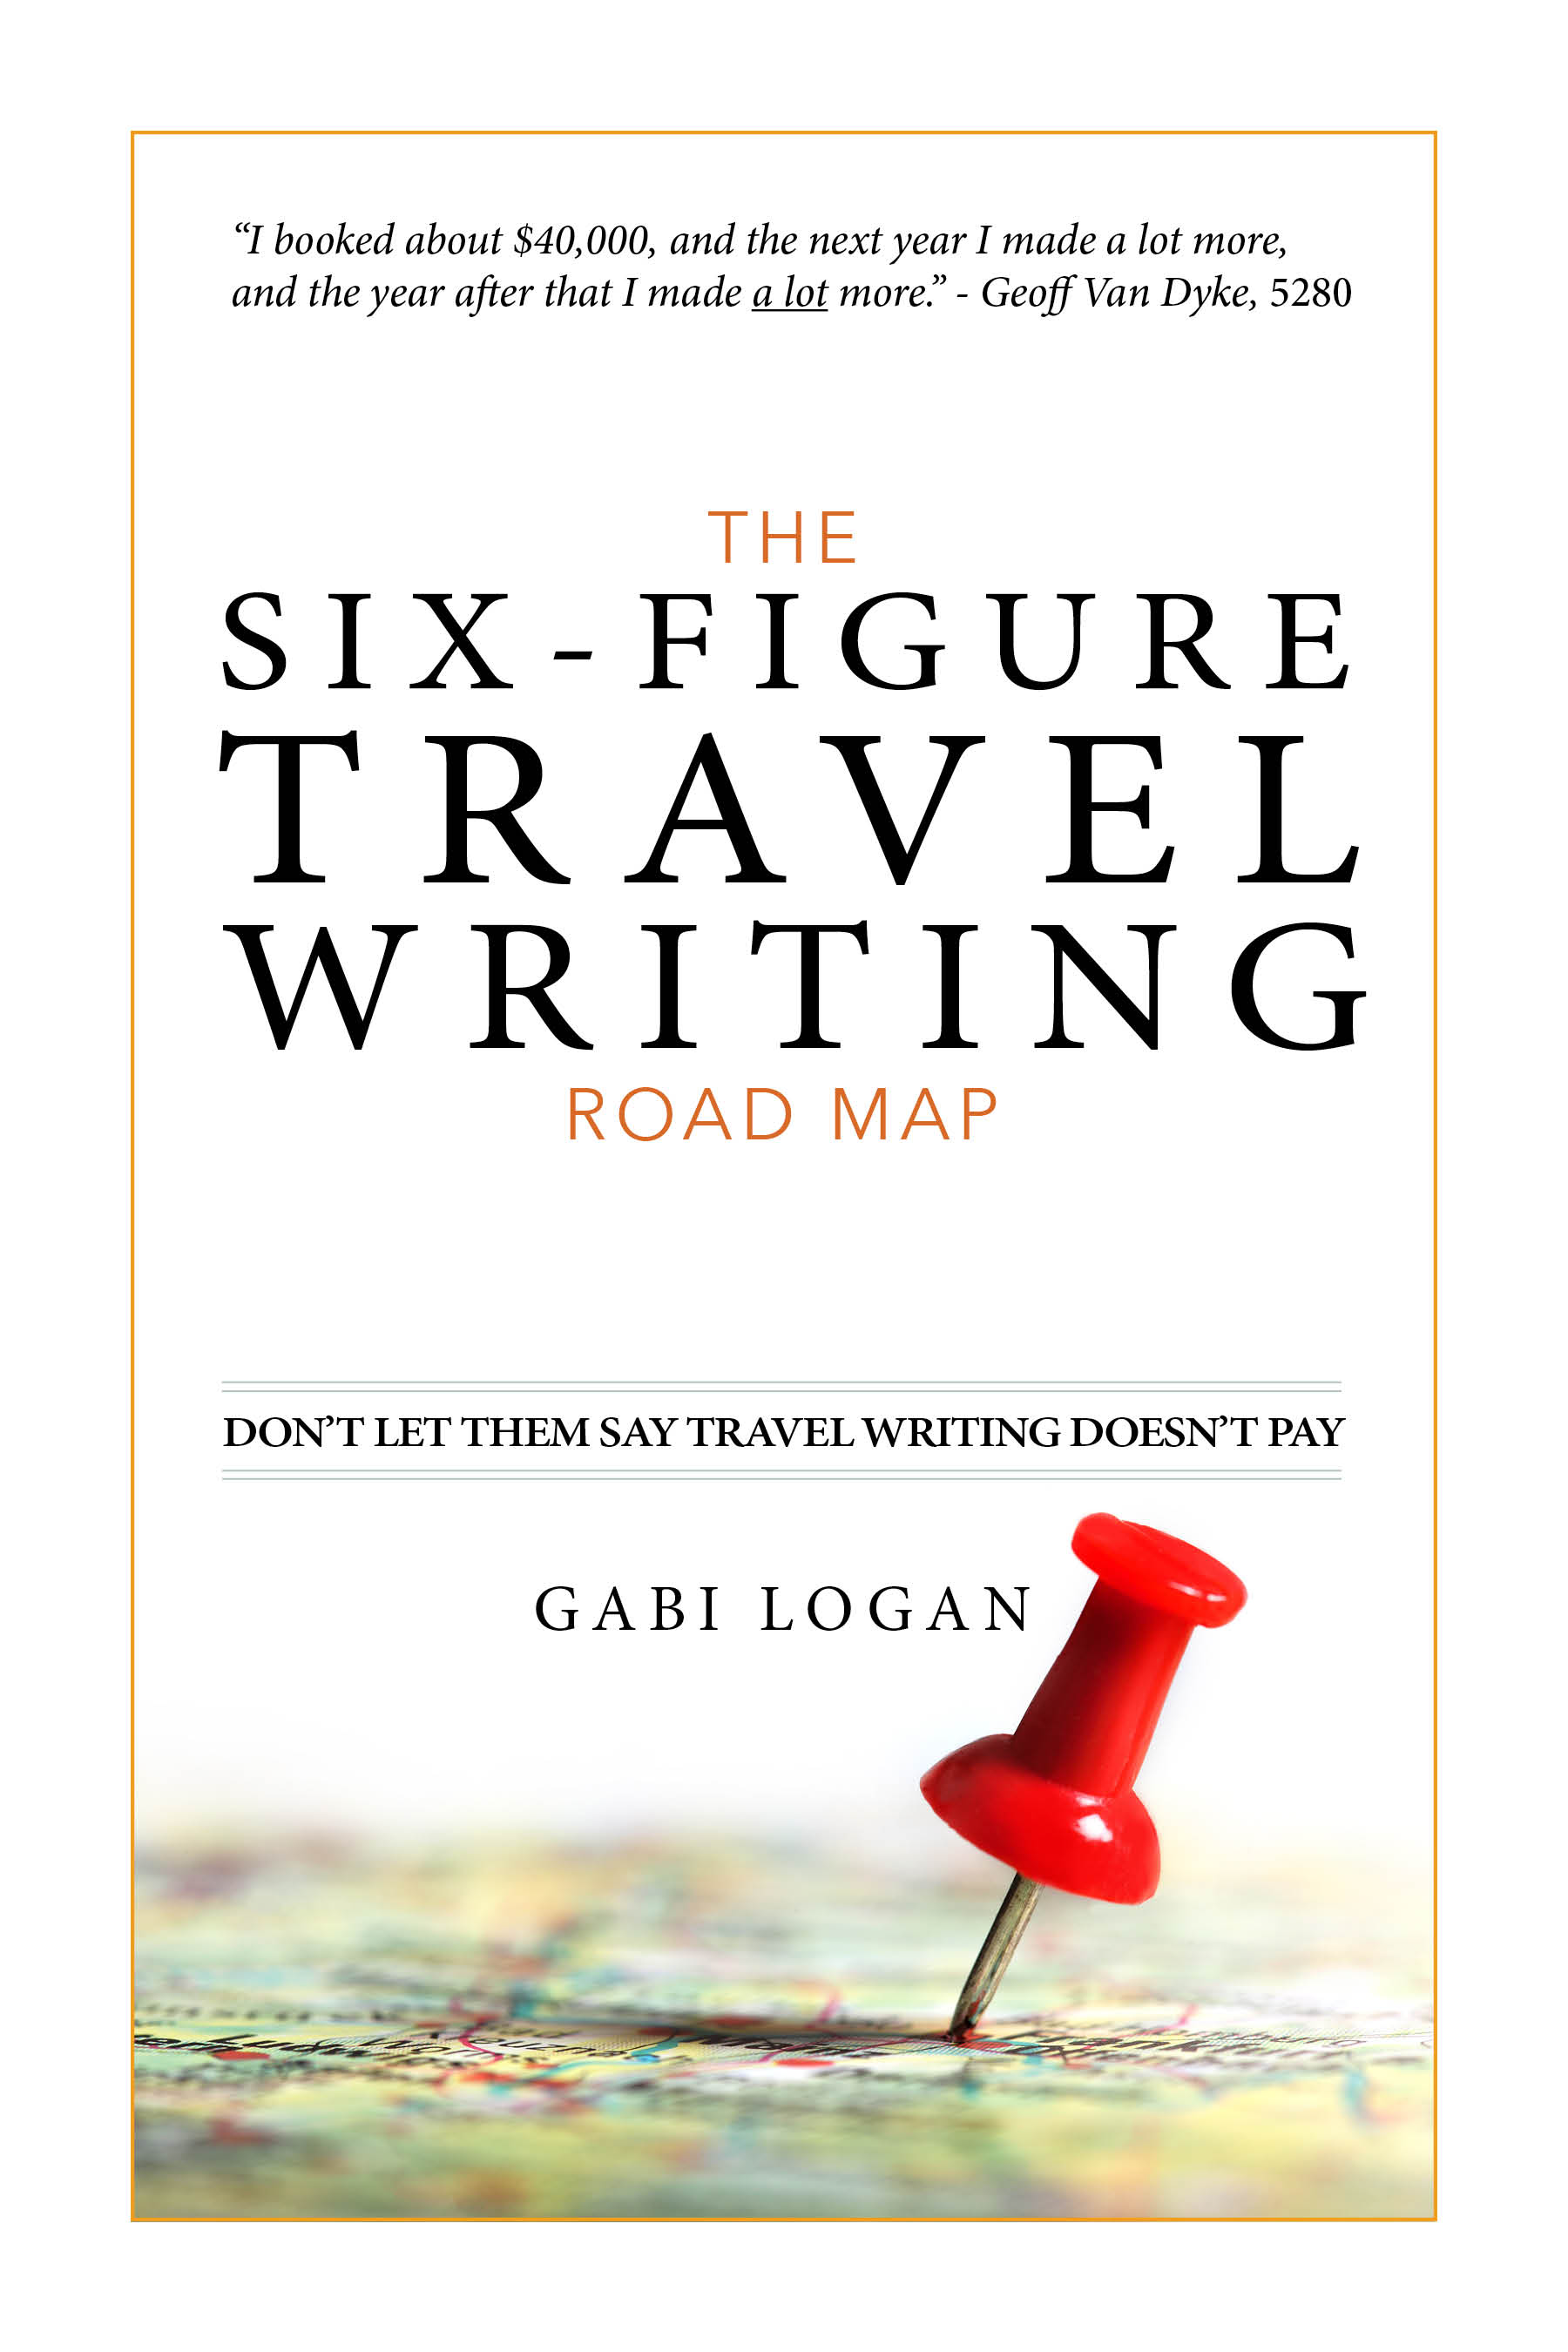 The Six-Figure Travel Writing Road Map